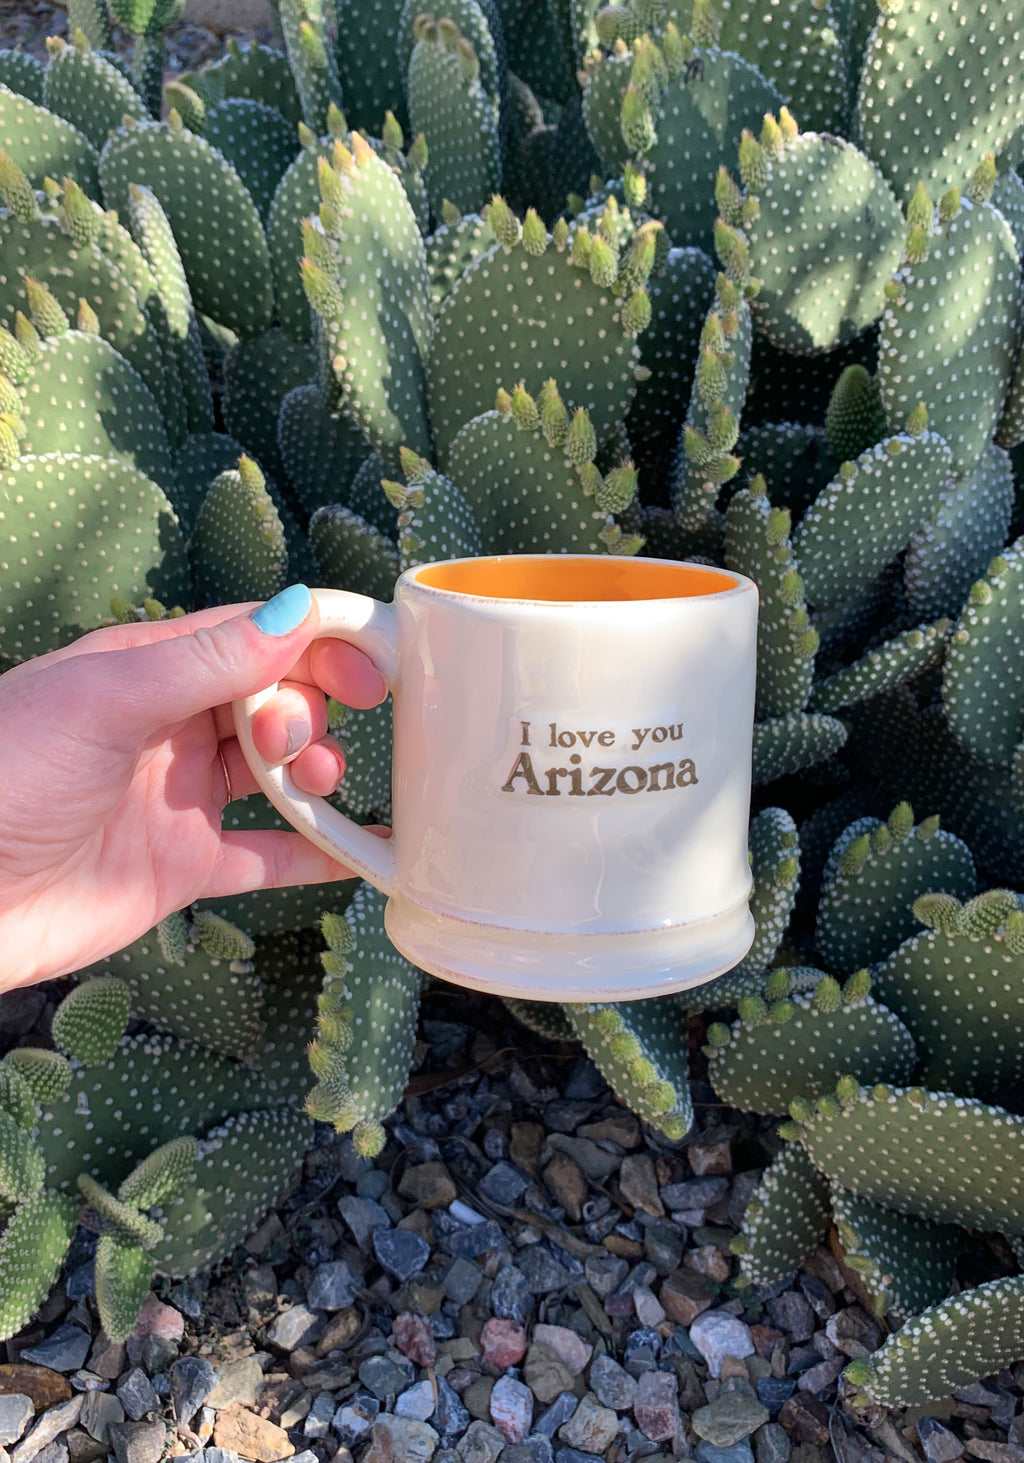 AZ Saguaro Hug Mug / womens accessories drinkware / mugs ceramic / drink cactus southwest / arizona souvenir gifts